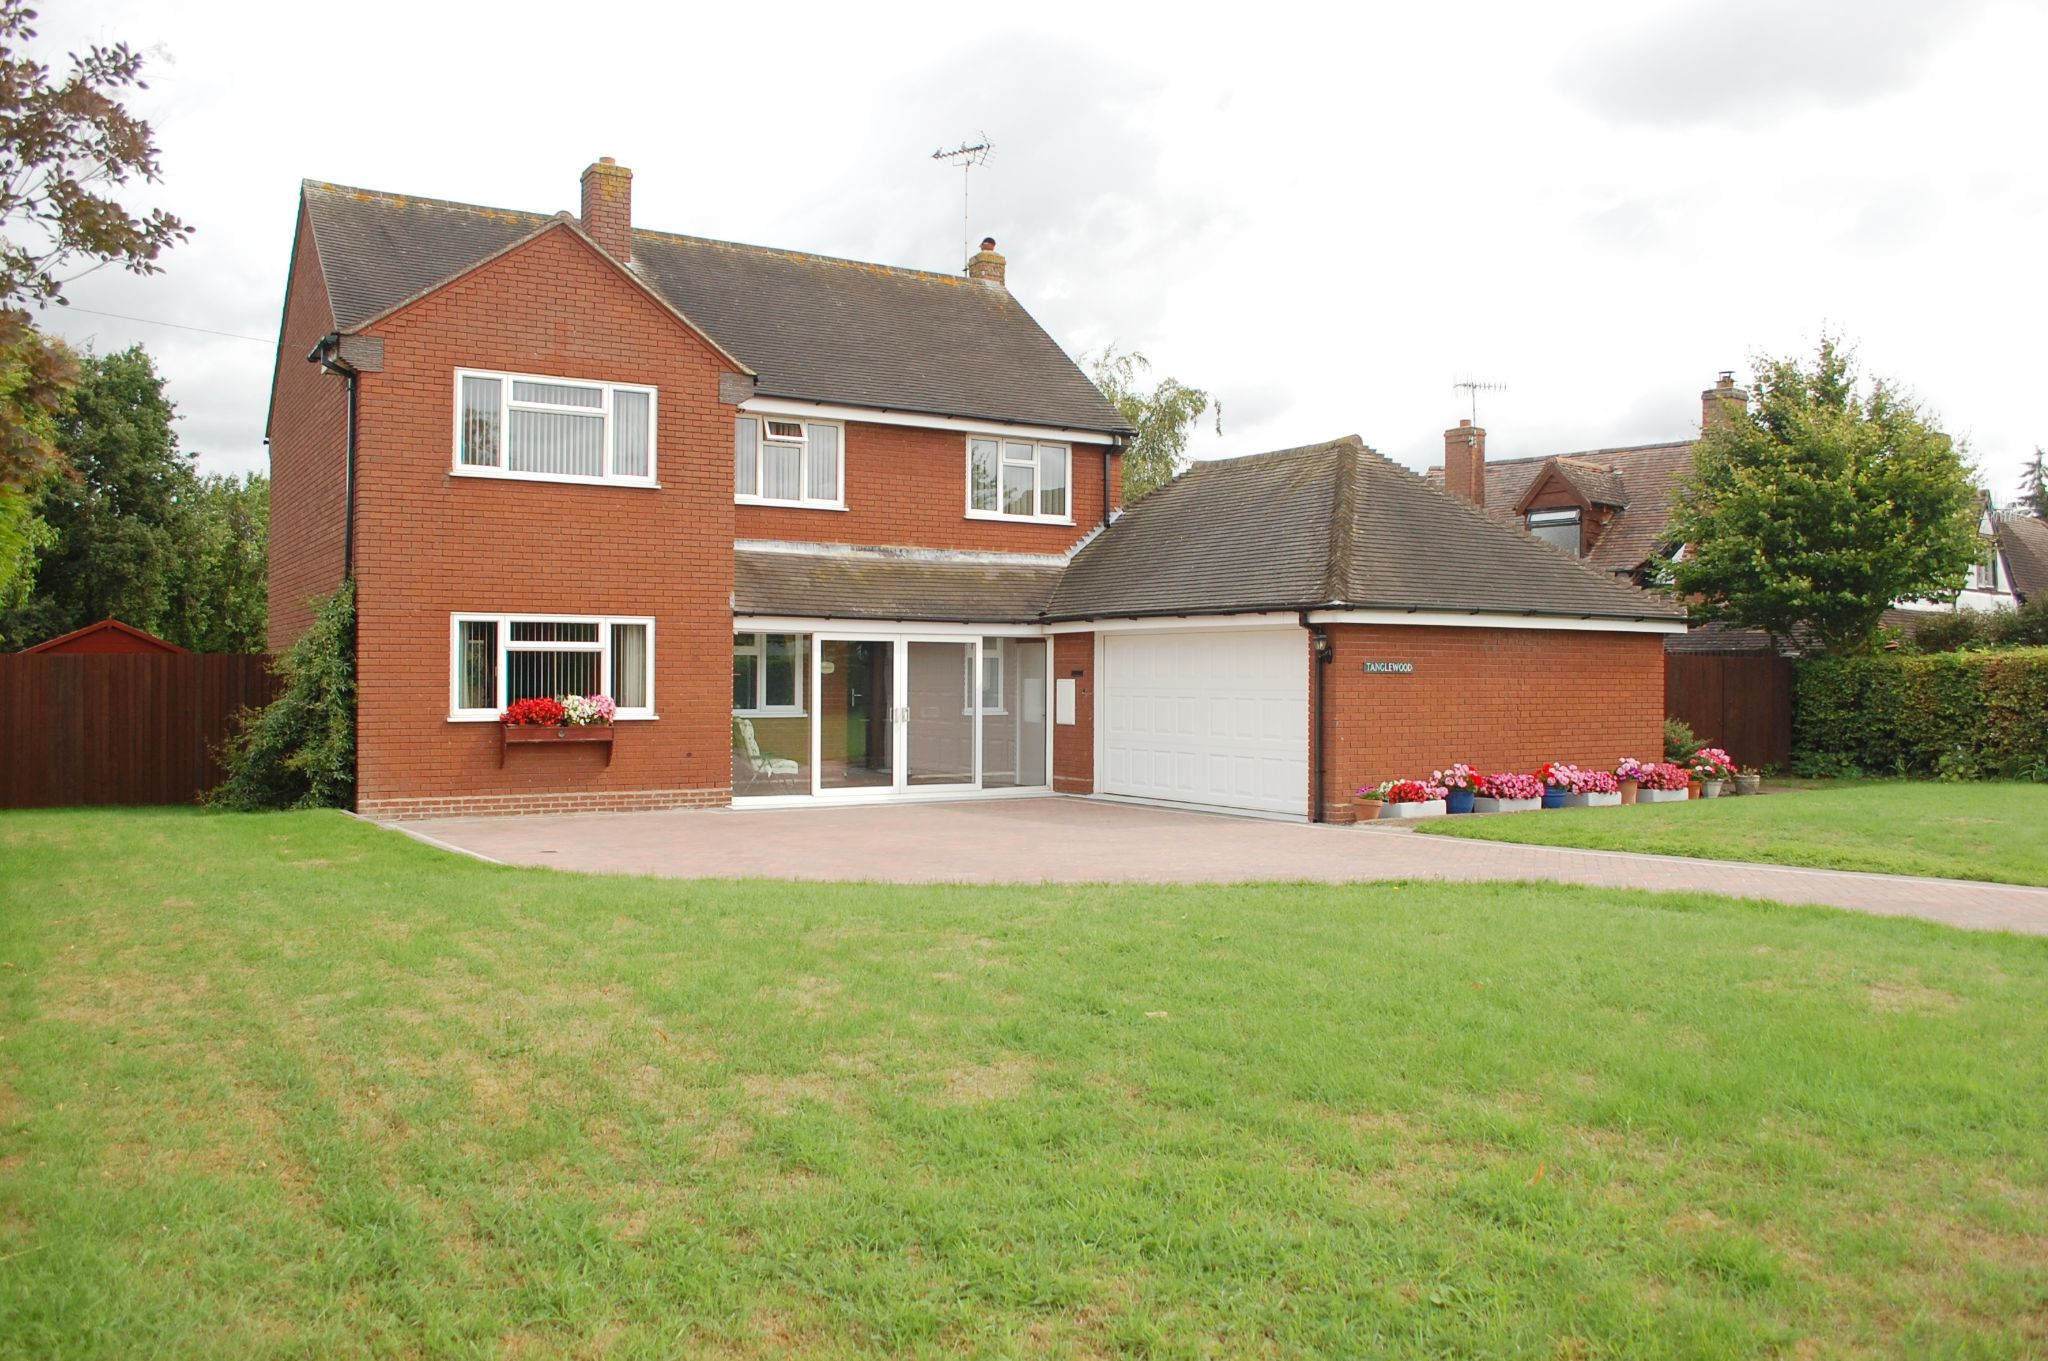 4 bedroom detached house For Sale in Broom Lane, Dunnington, Alcester - Property photograph